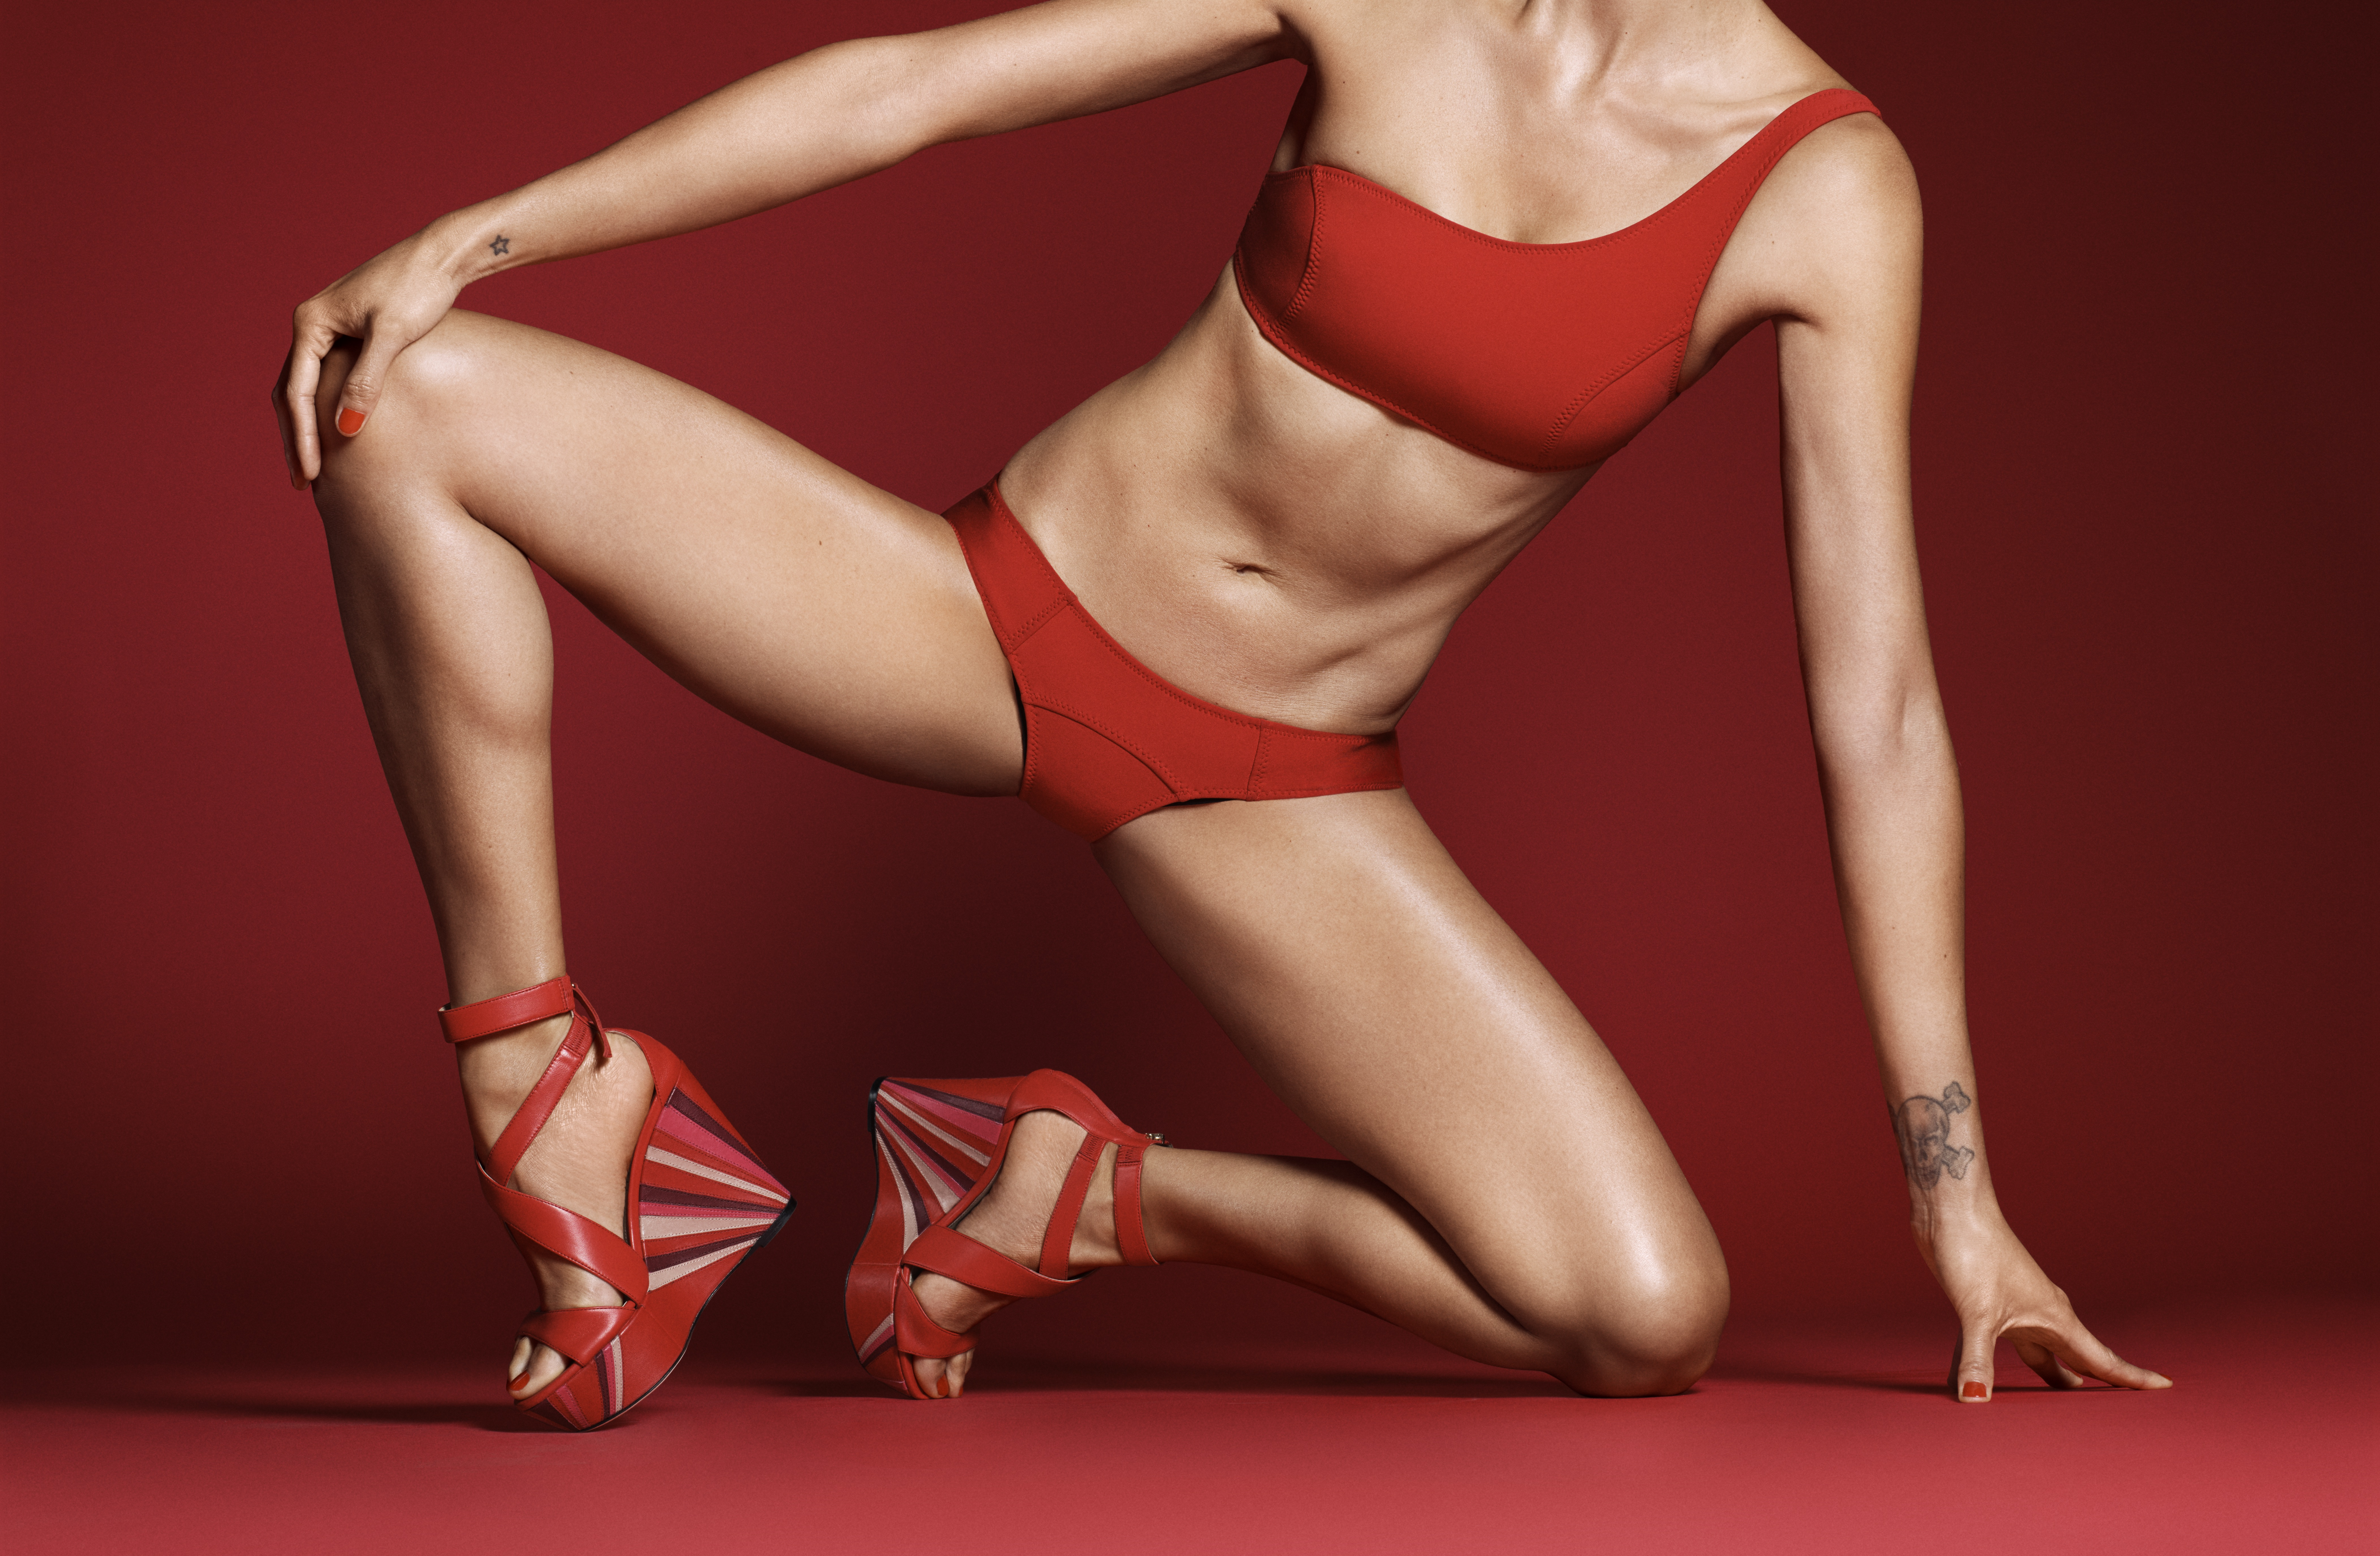 A shoe style from the Tamara Mellon Leave Him on Red collection